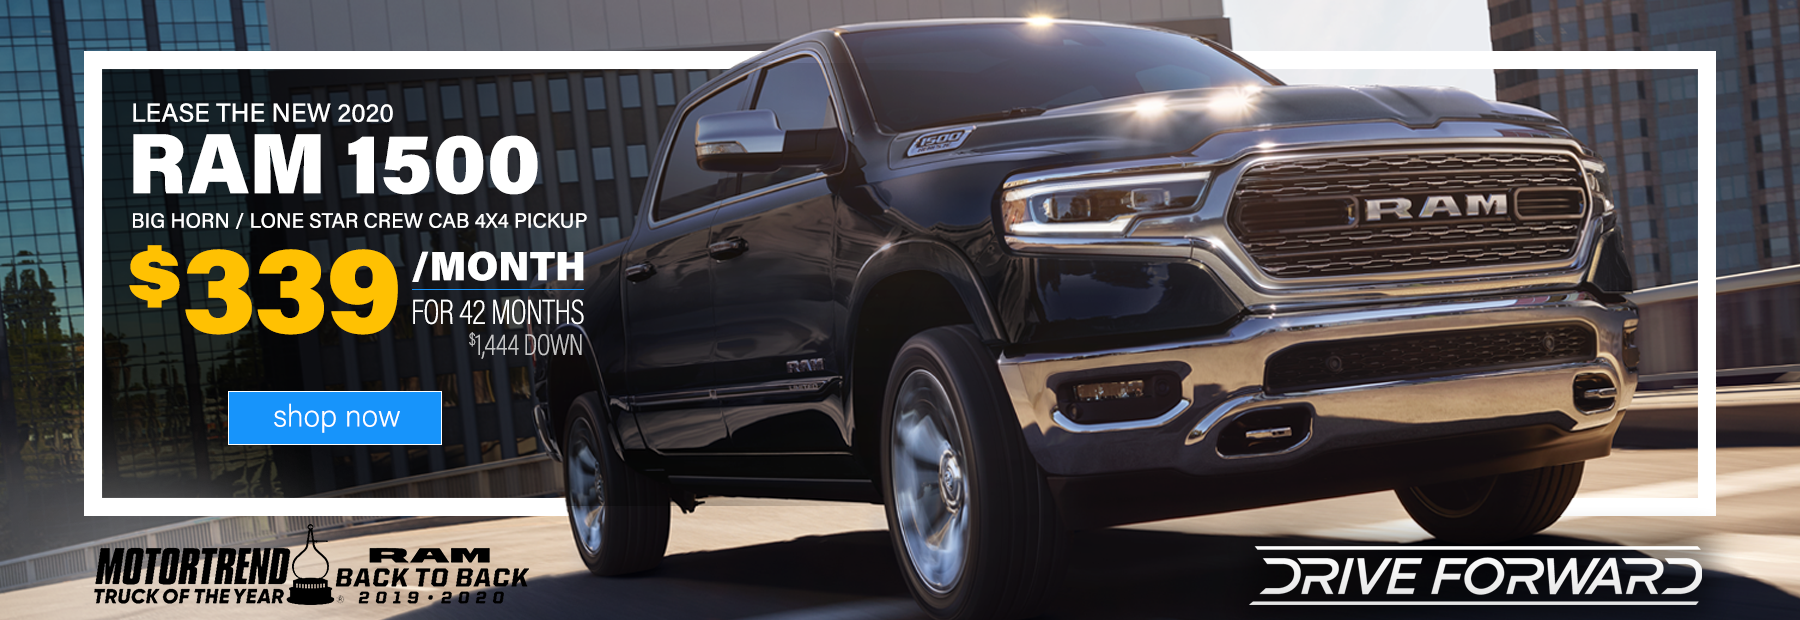 2020 Ram 1500 Crew Cab Lease in Dayton, OH